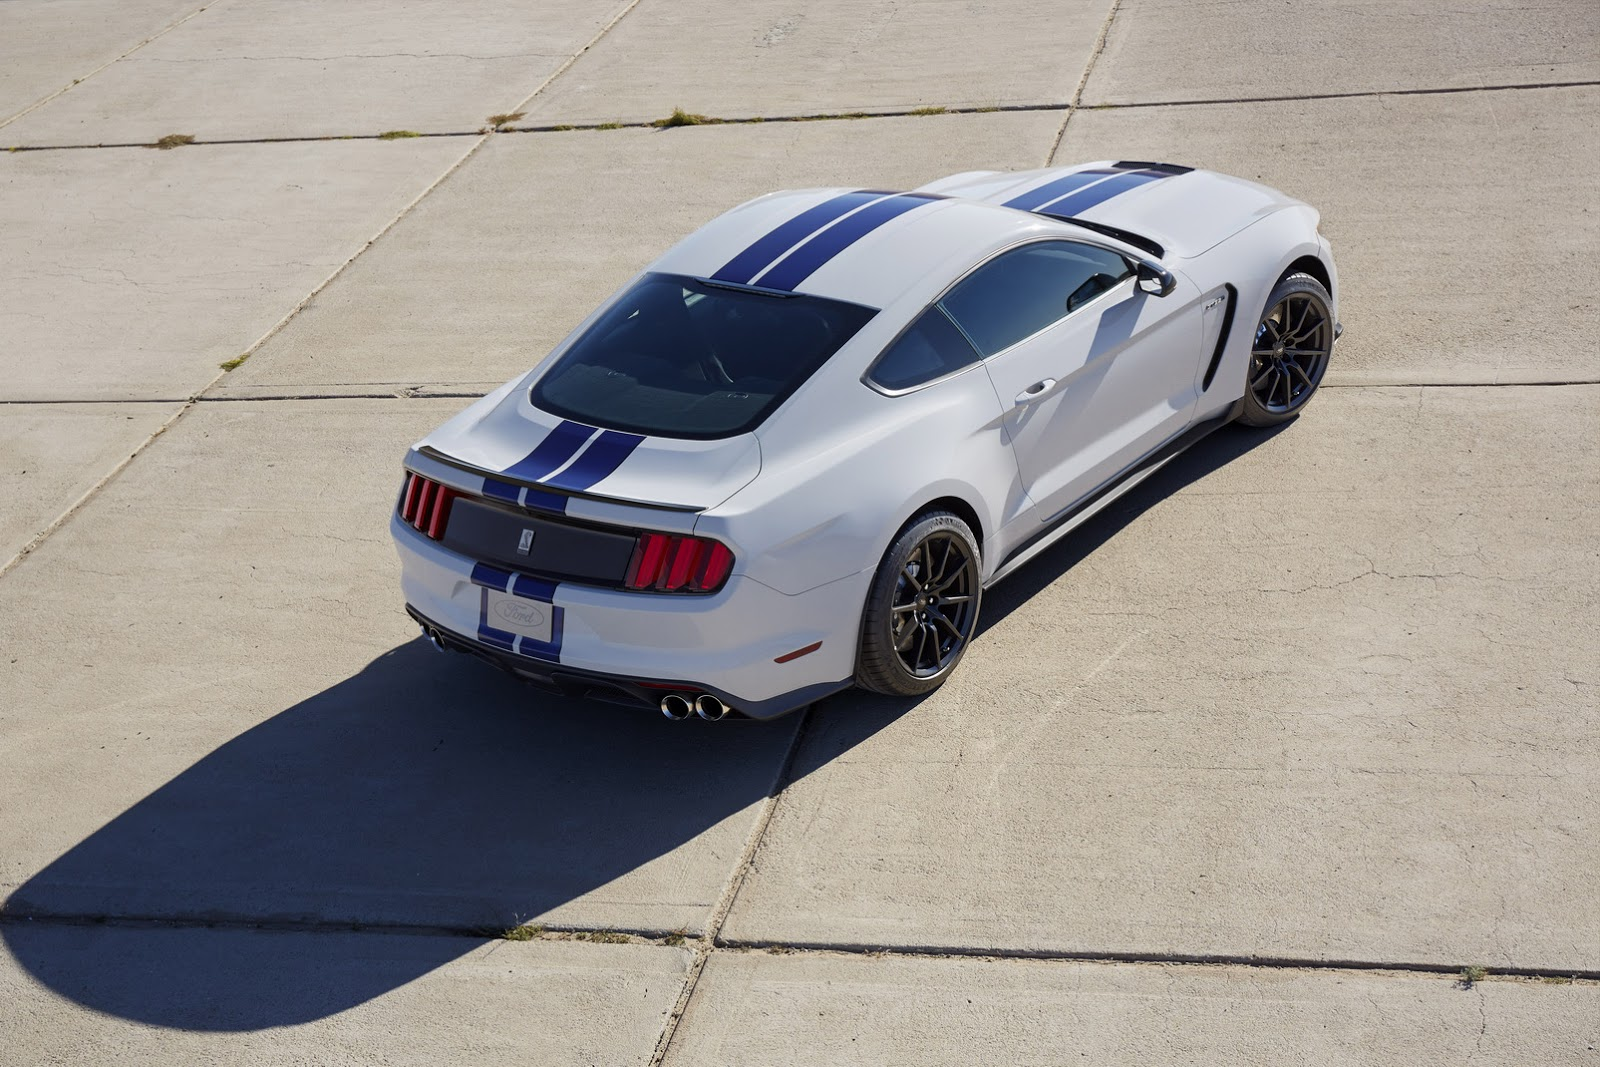 New-Ford-Mustang-Shelby-GT350-32.jpg